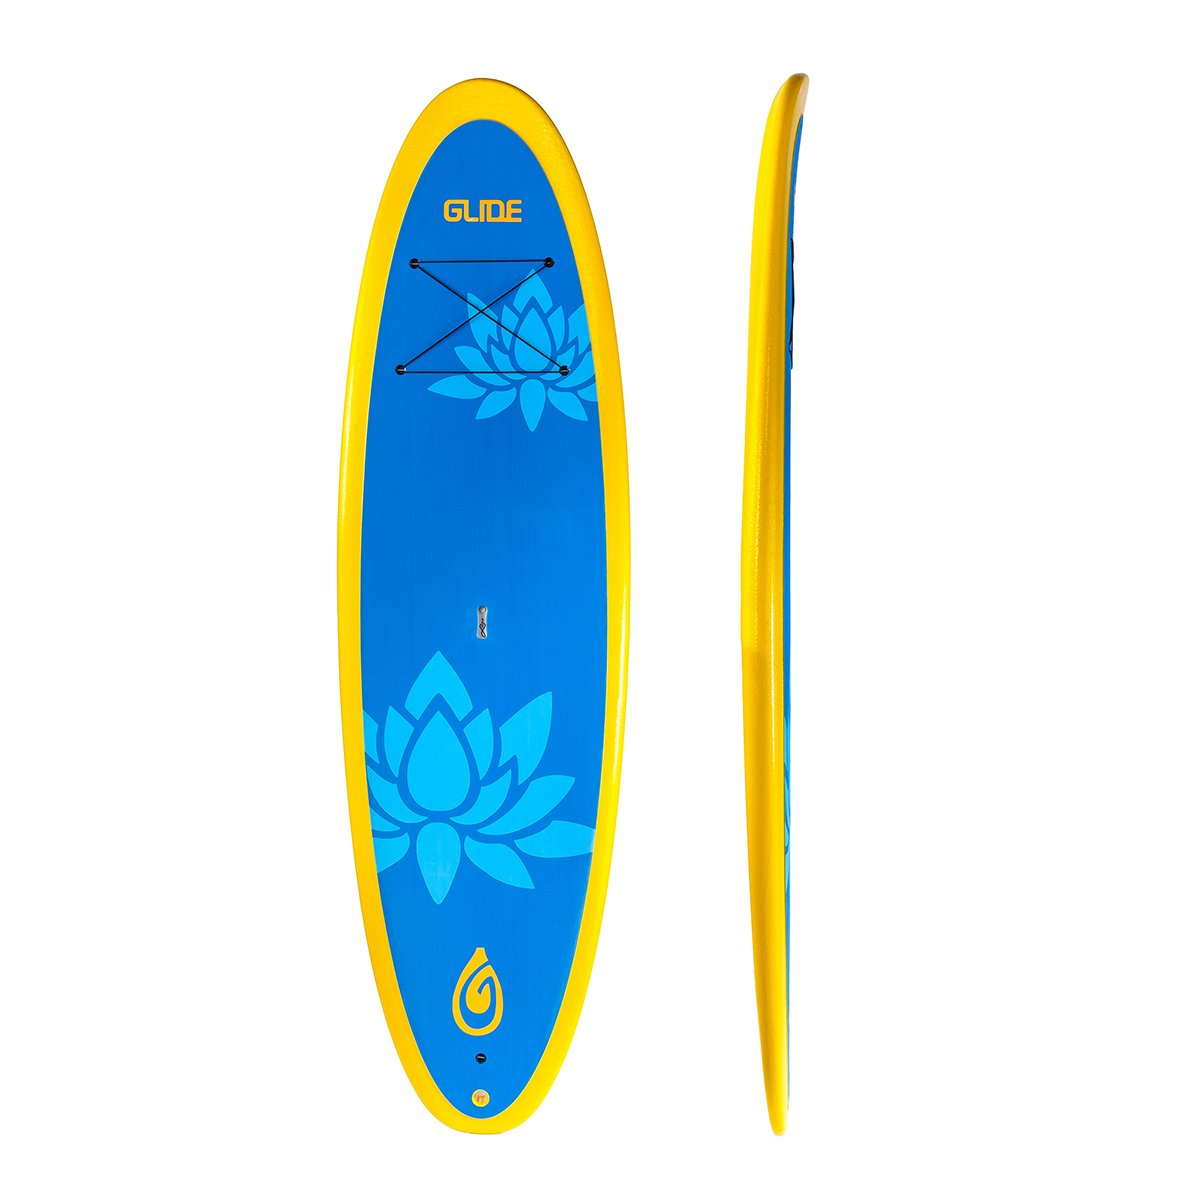 Lotus:  10'. Glide partnered with some of the pioneers in SUP Yoga to create the premier SUP Yoga center to develop our Lotus Yoga and Fitness Board. The instructors have tried every SUP Yoga board on the market and none of them quite worked for their demanding Yoga sessions. The board had to be a stable and comfortable platform for Yoga or Crossfit style exercises but it also had to paddle well in flat water as well as the open ocean. It had to be durable but it also had to be light weight. So many demands! After almost 1 year in development and testing Glide's Yoga board will become the standard for Yoga and Fitness boards. Designer Ken Driscoll was last seen doing a King Pigeon and Side Crane Pose on the Glide Lotus. We're pretty sure he's not coming back to the factory.